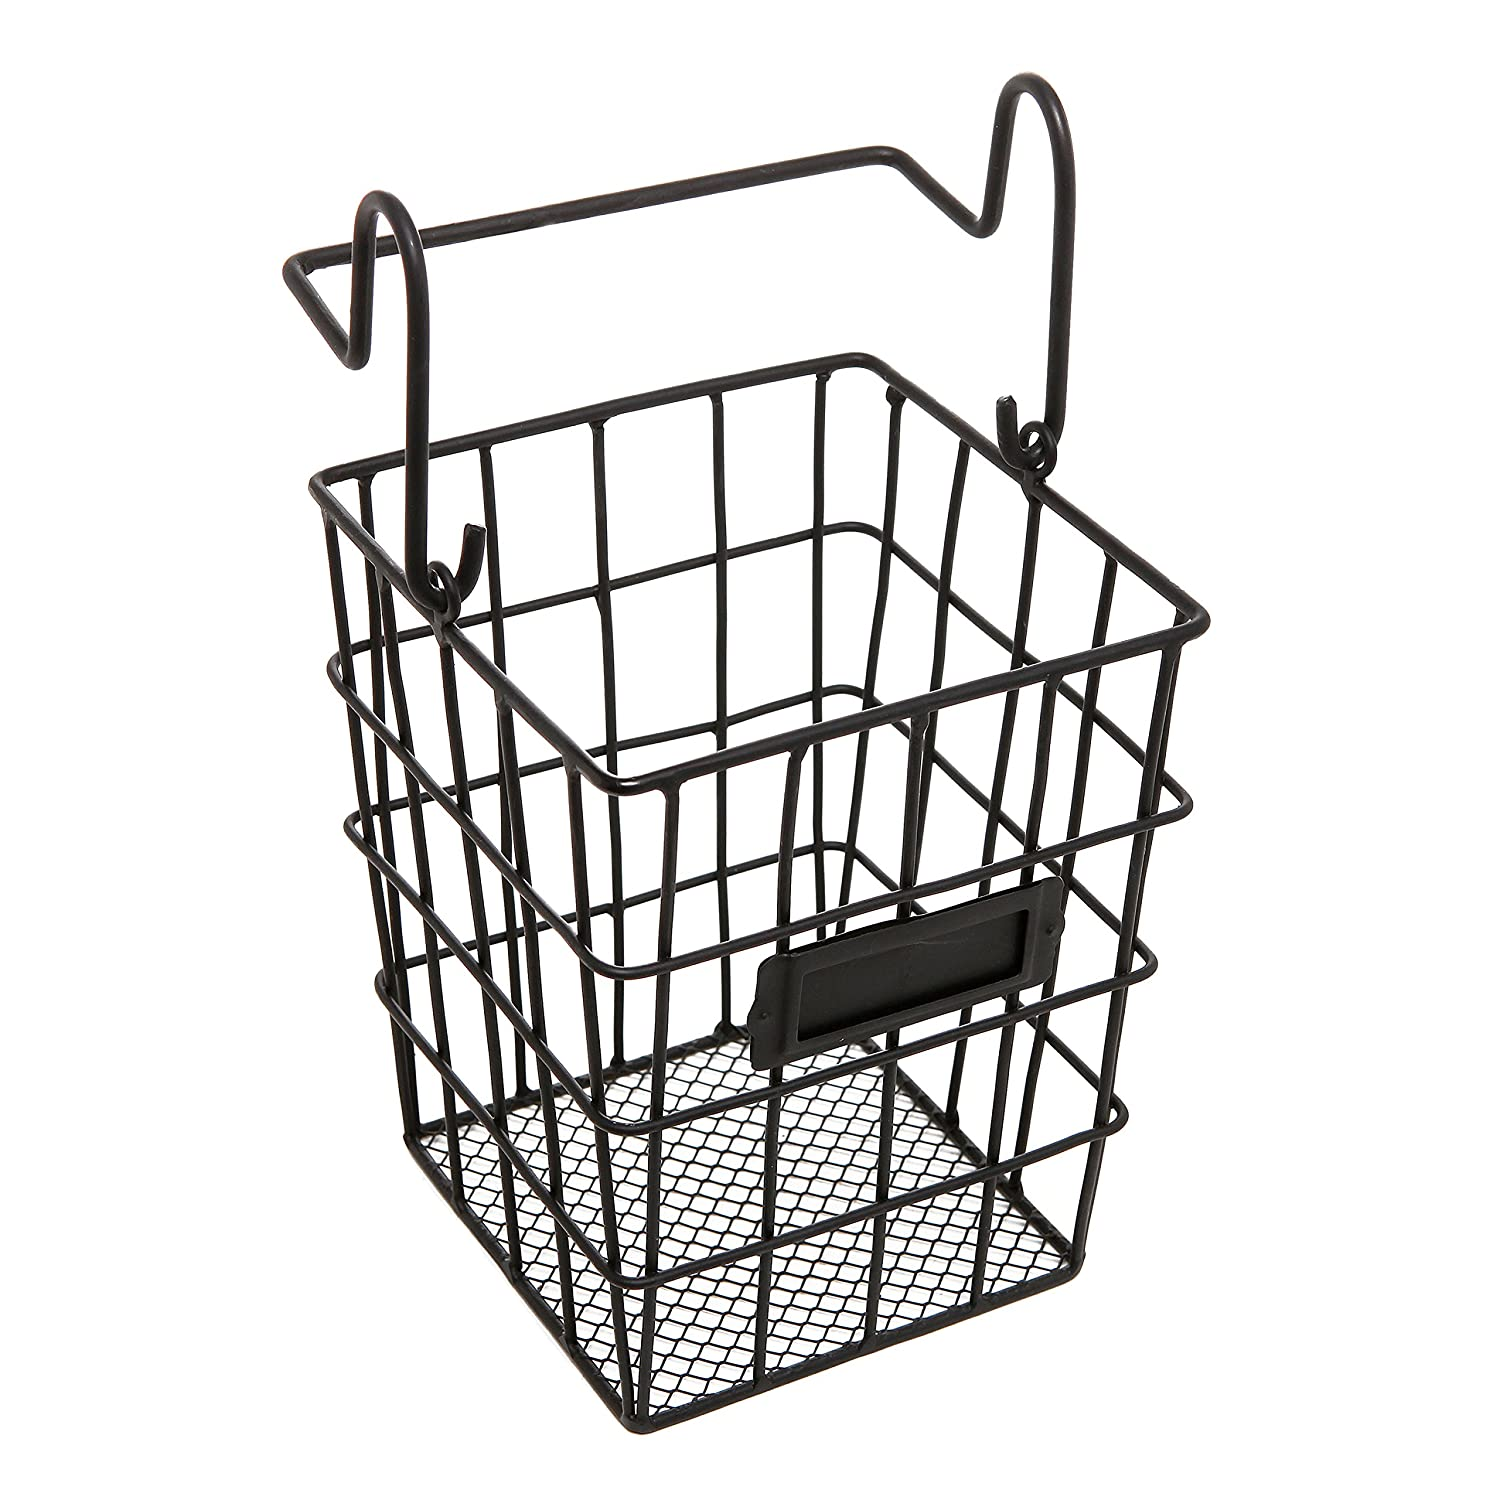 Amazon.com: Modular Black Metal Mesh Wire Hanging Kitchen & Dining ...